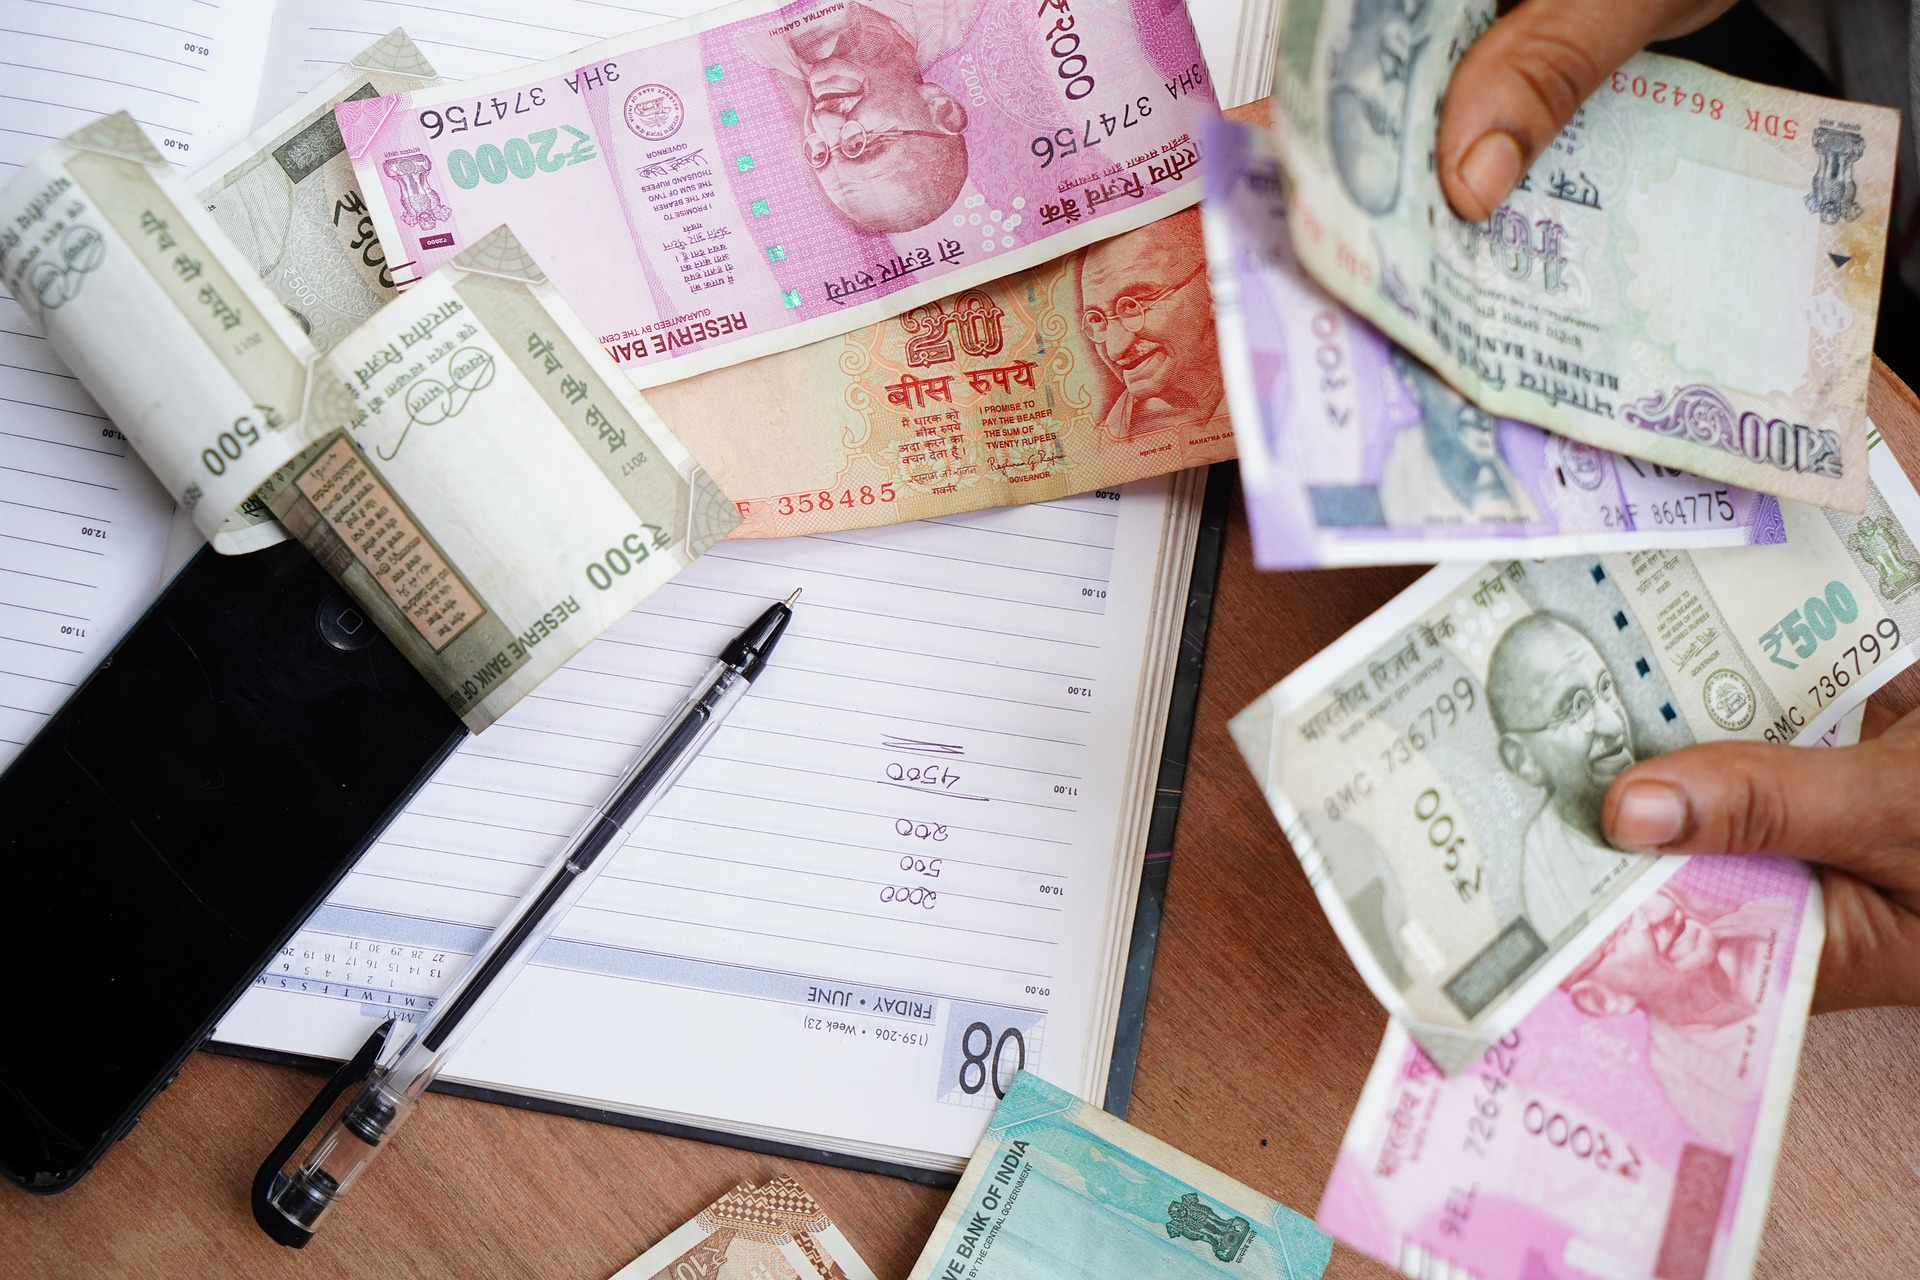 Notes in circulation have increased since demonetisation